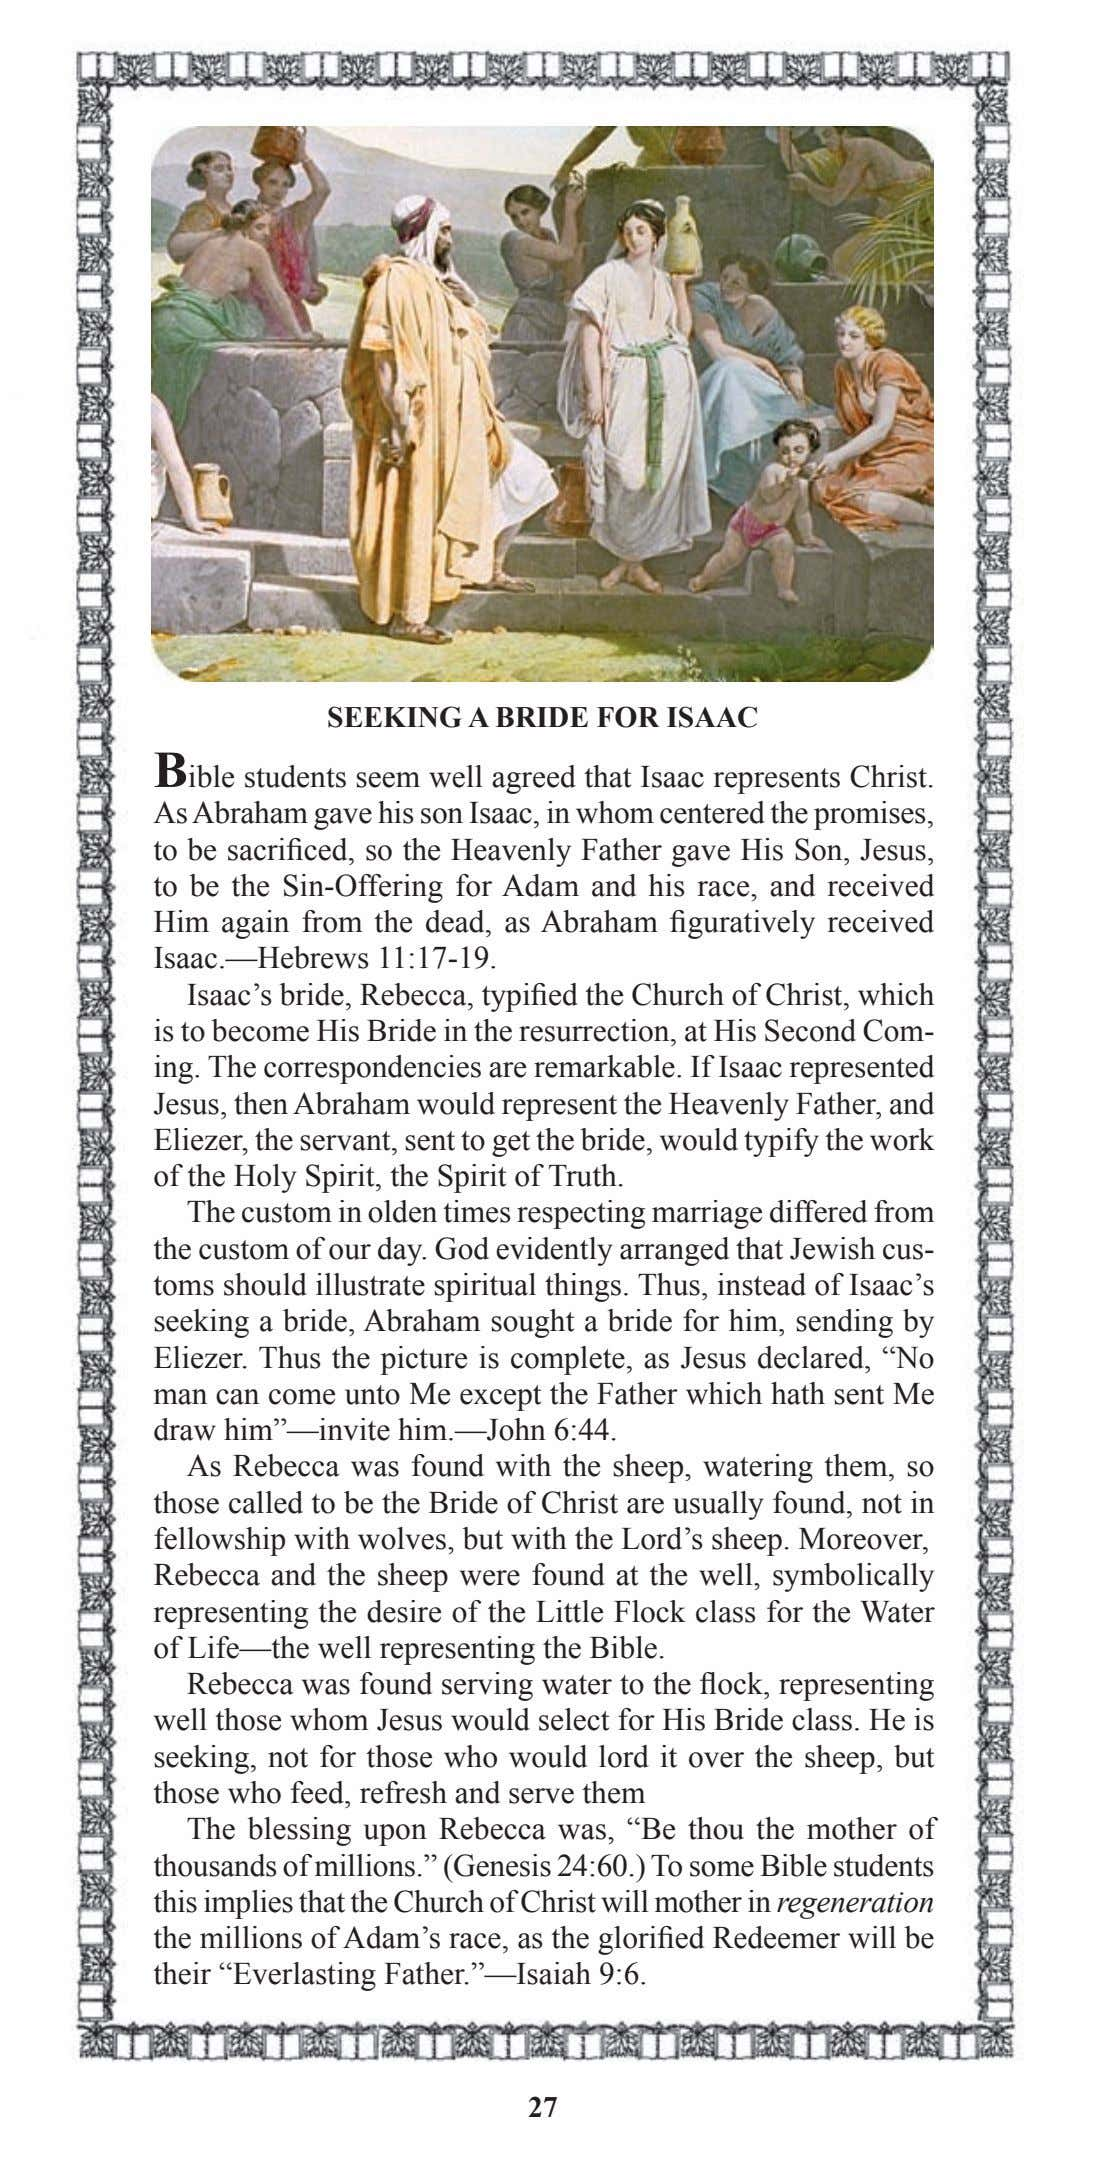 SEEKING A BRIDE FOR ISAAC Bible students seem well agreed that Isaac represents Christ. As